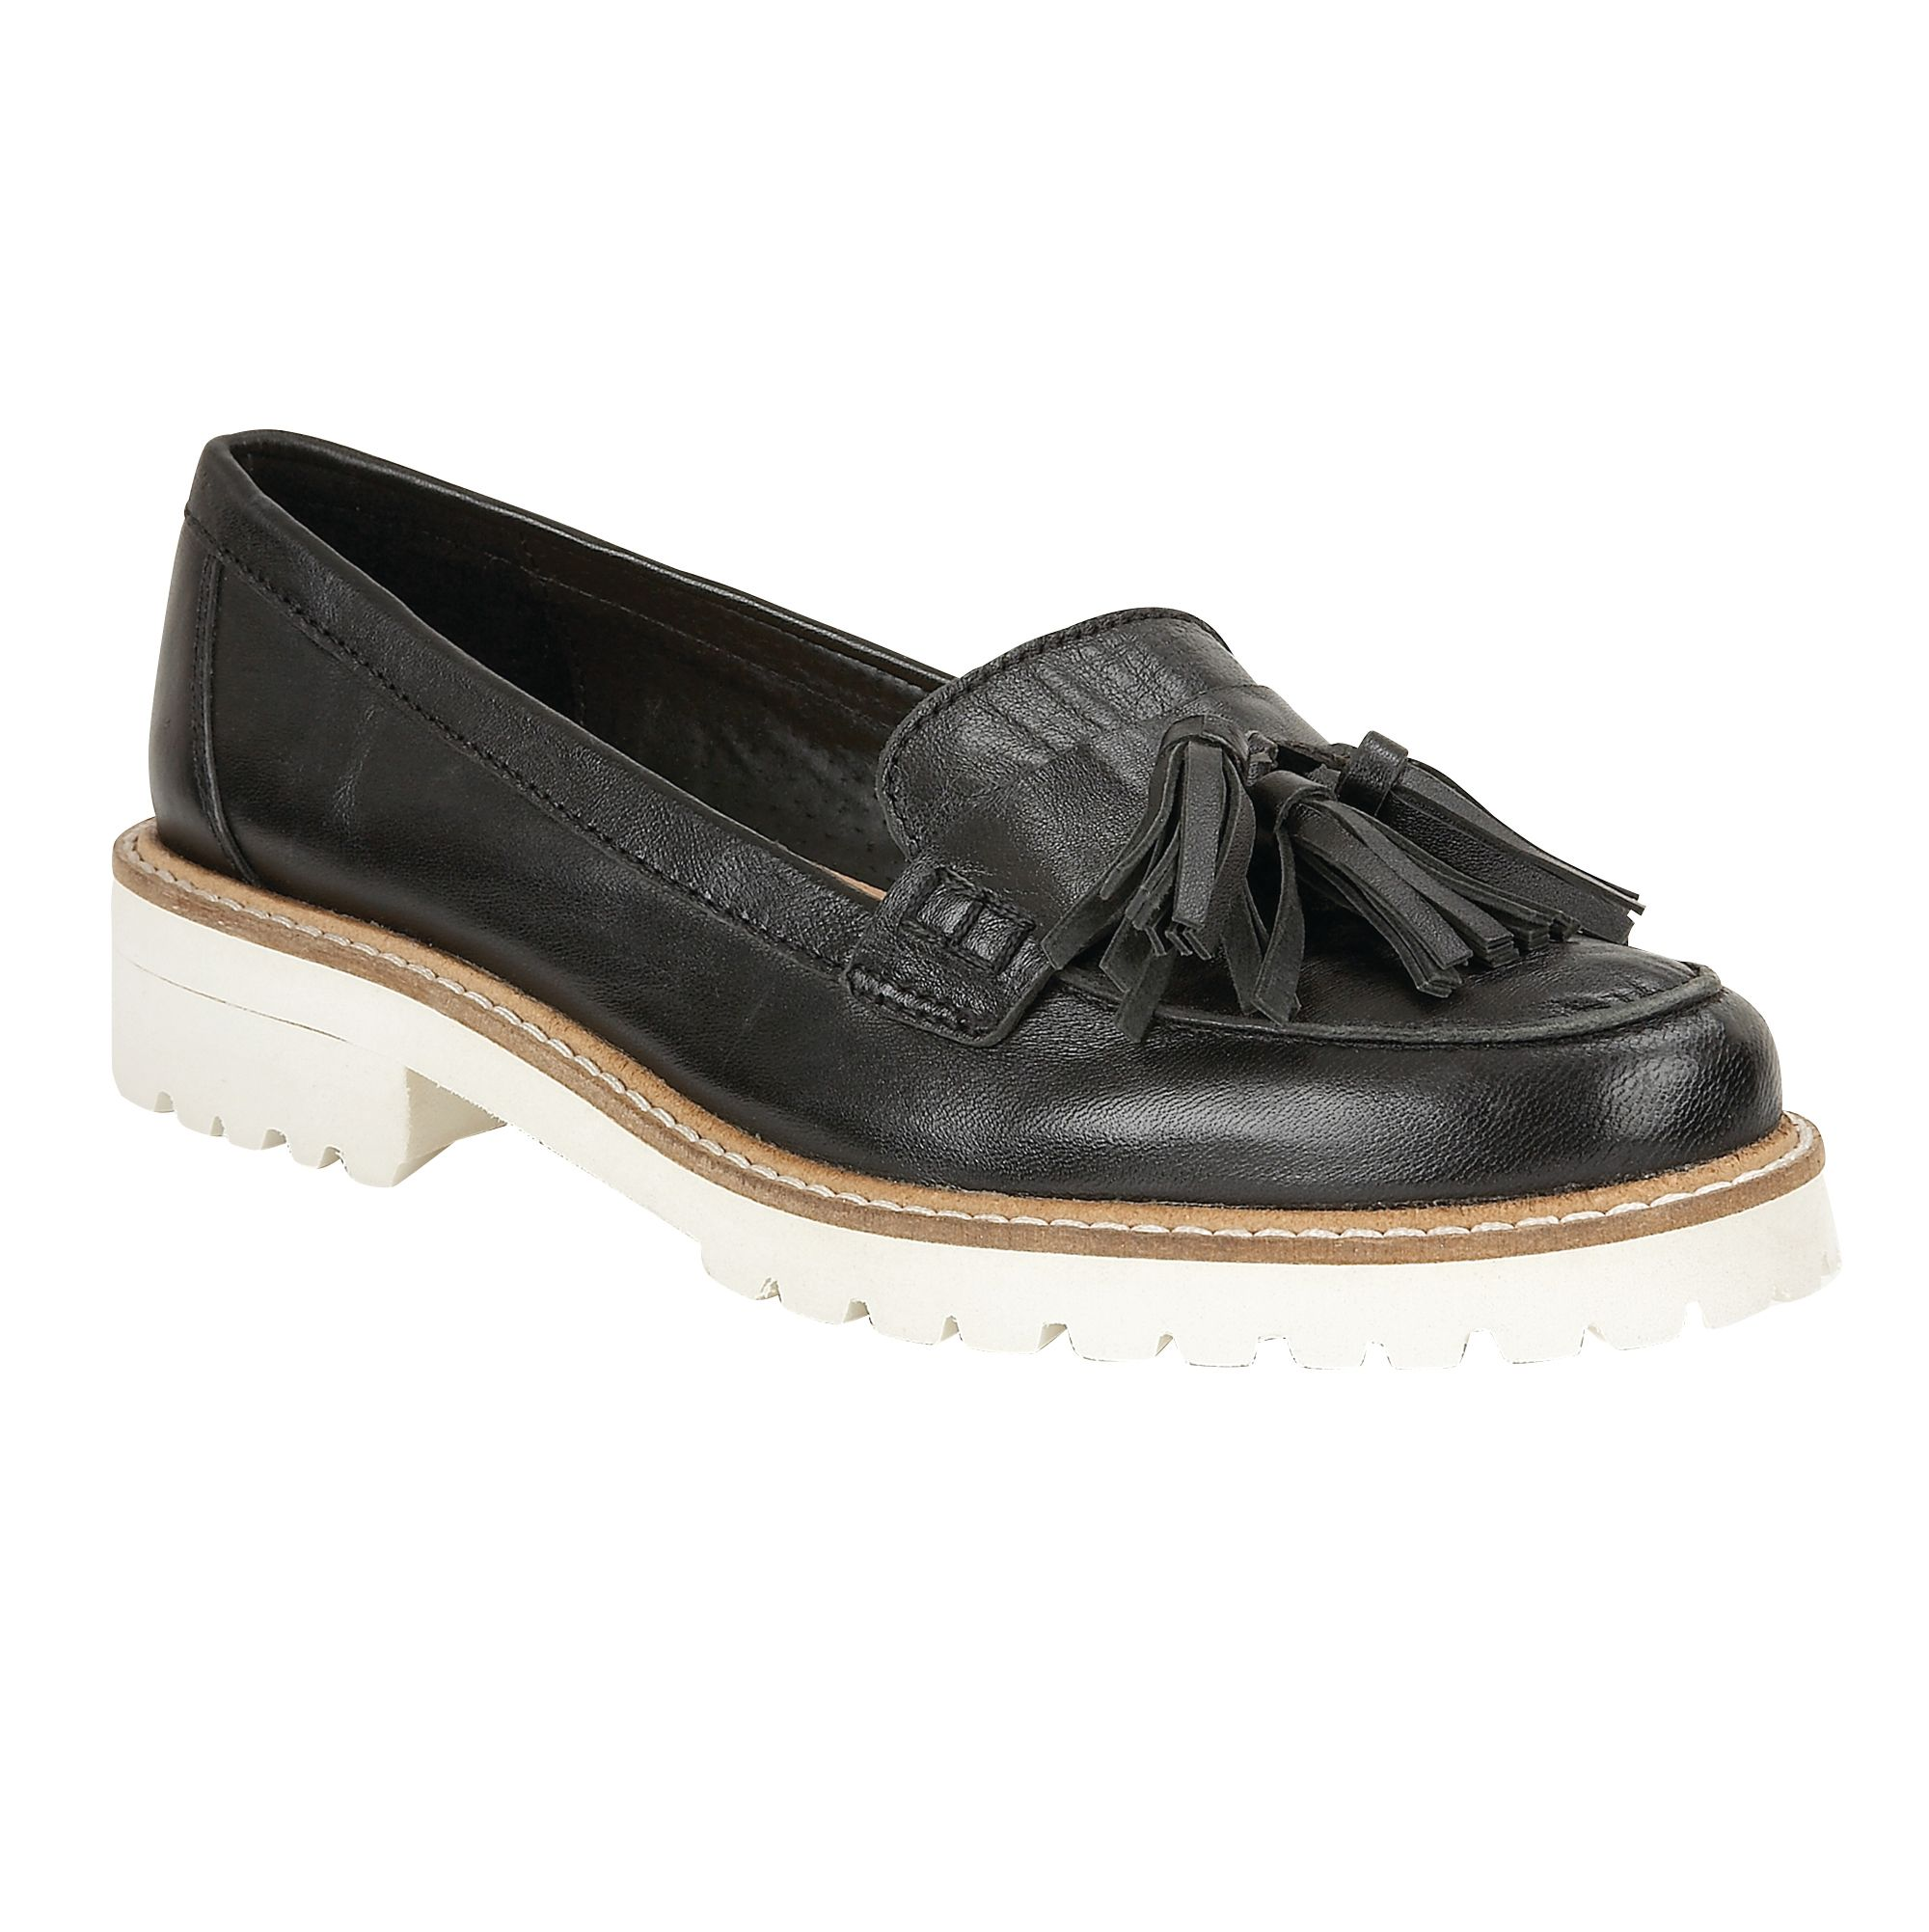 Ravel Ravel Midway cleated sole slip on loafers, Black Leather